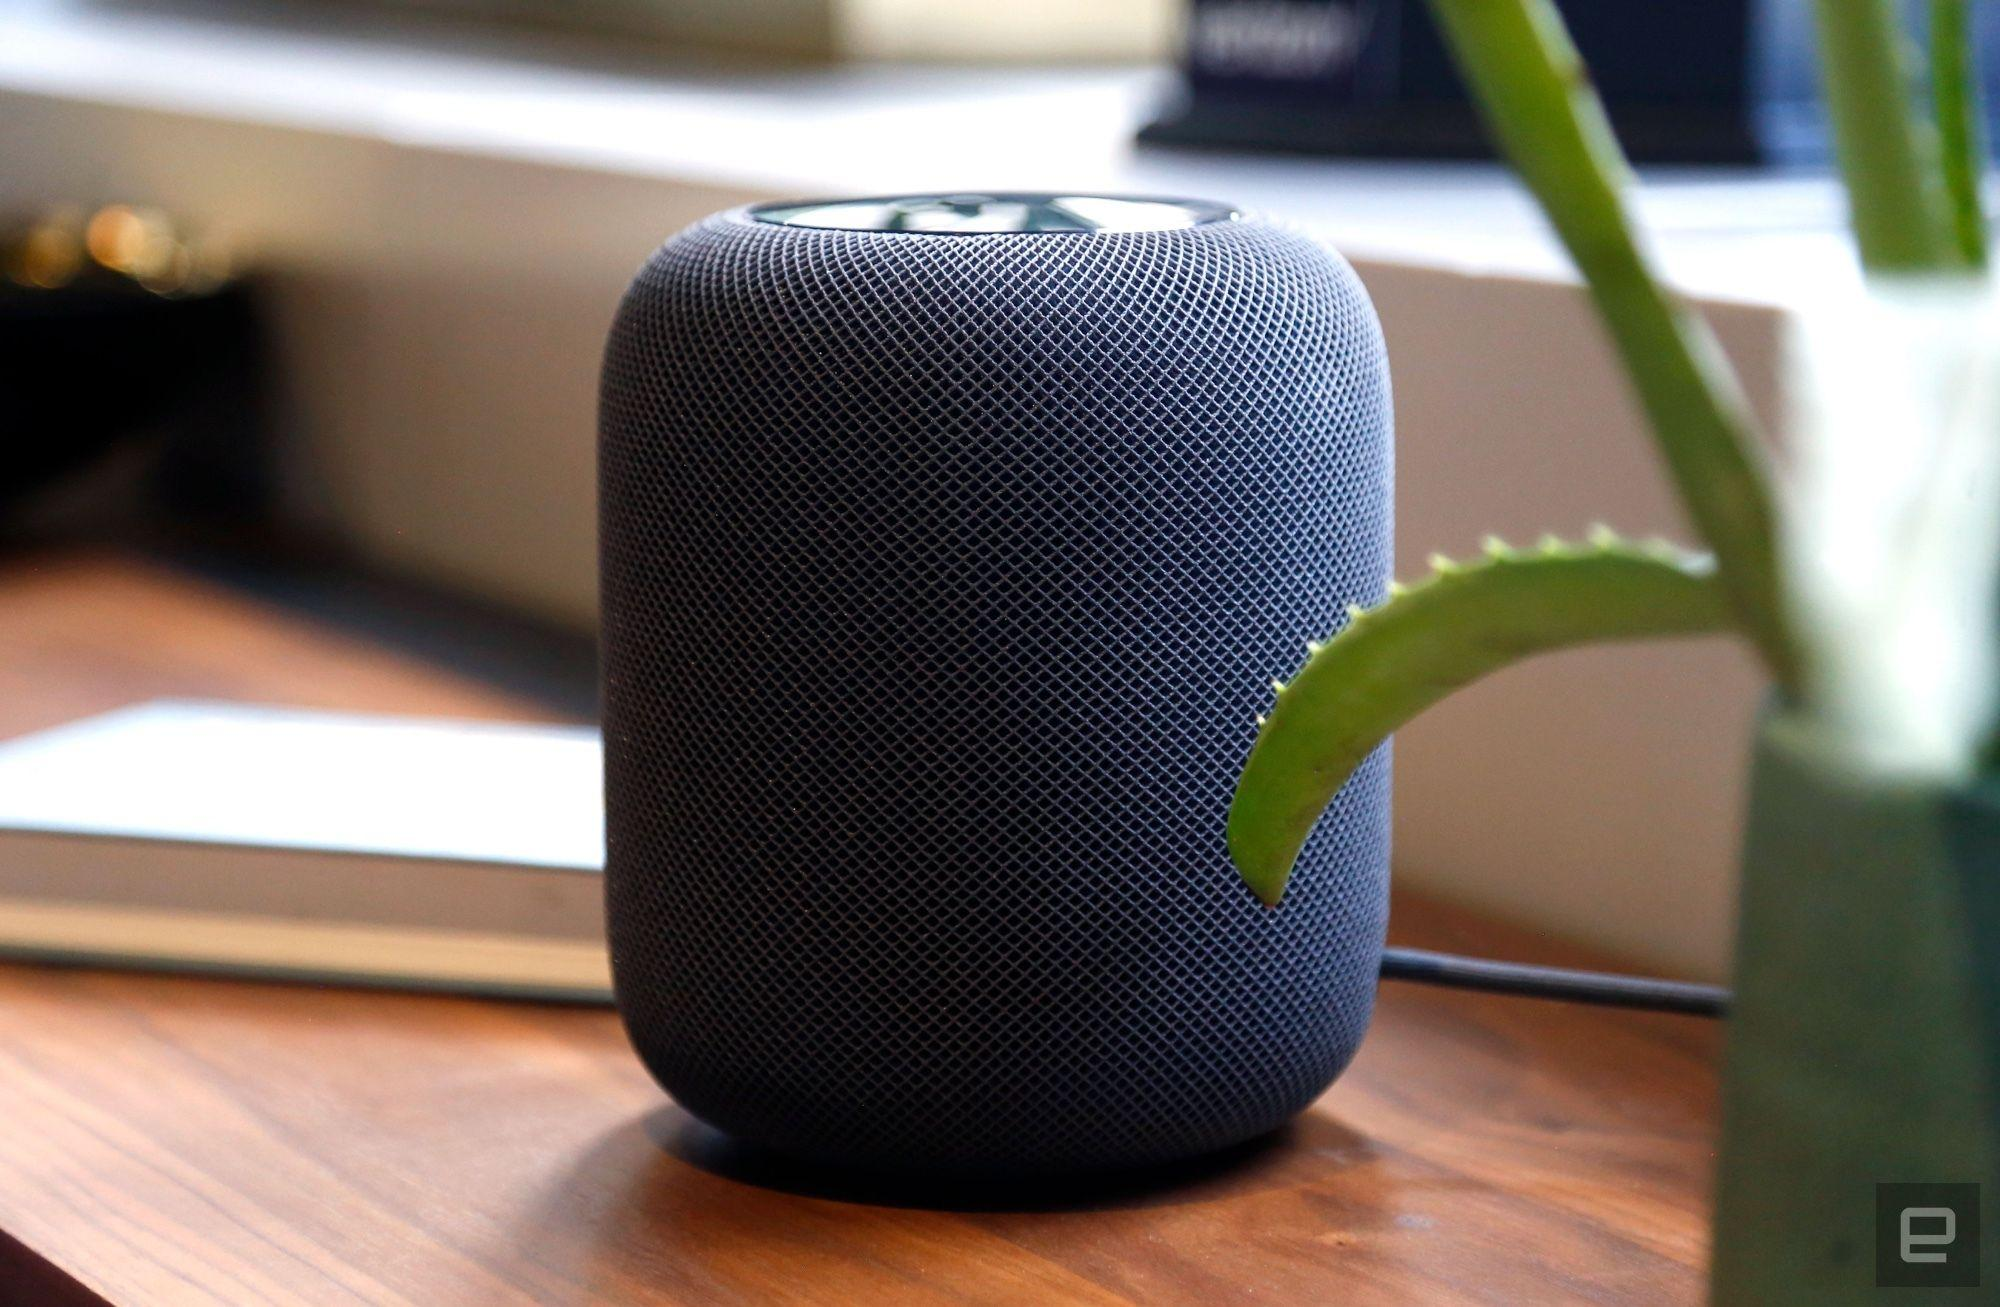 The Morning After: Apple will discontinue the original HomePod - Engadget